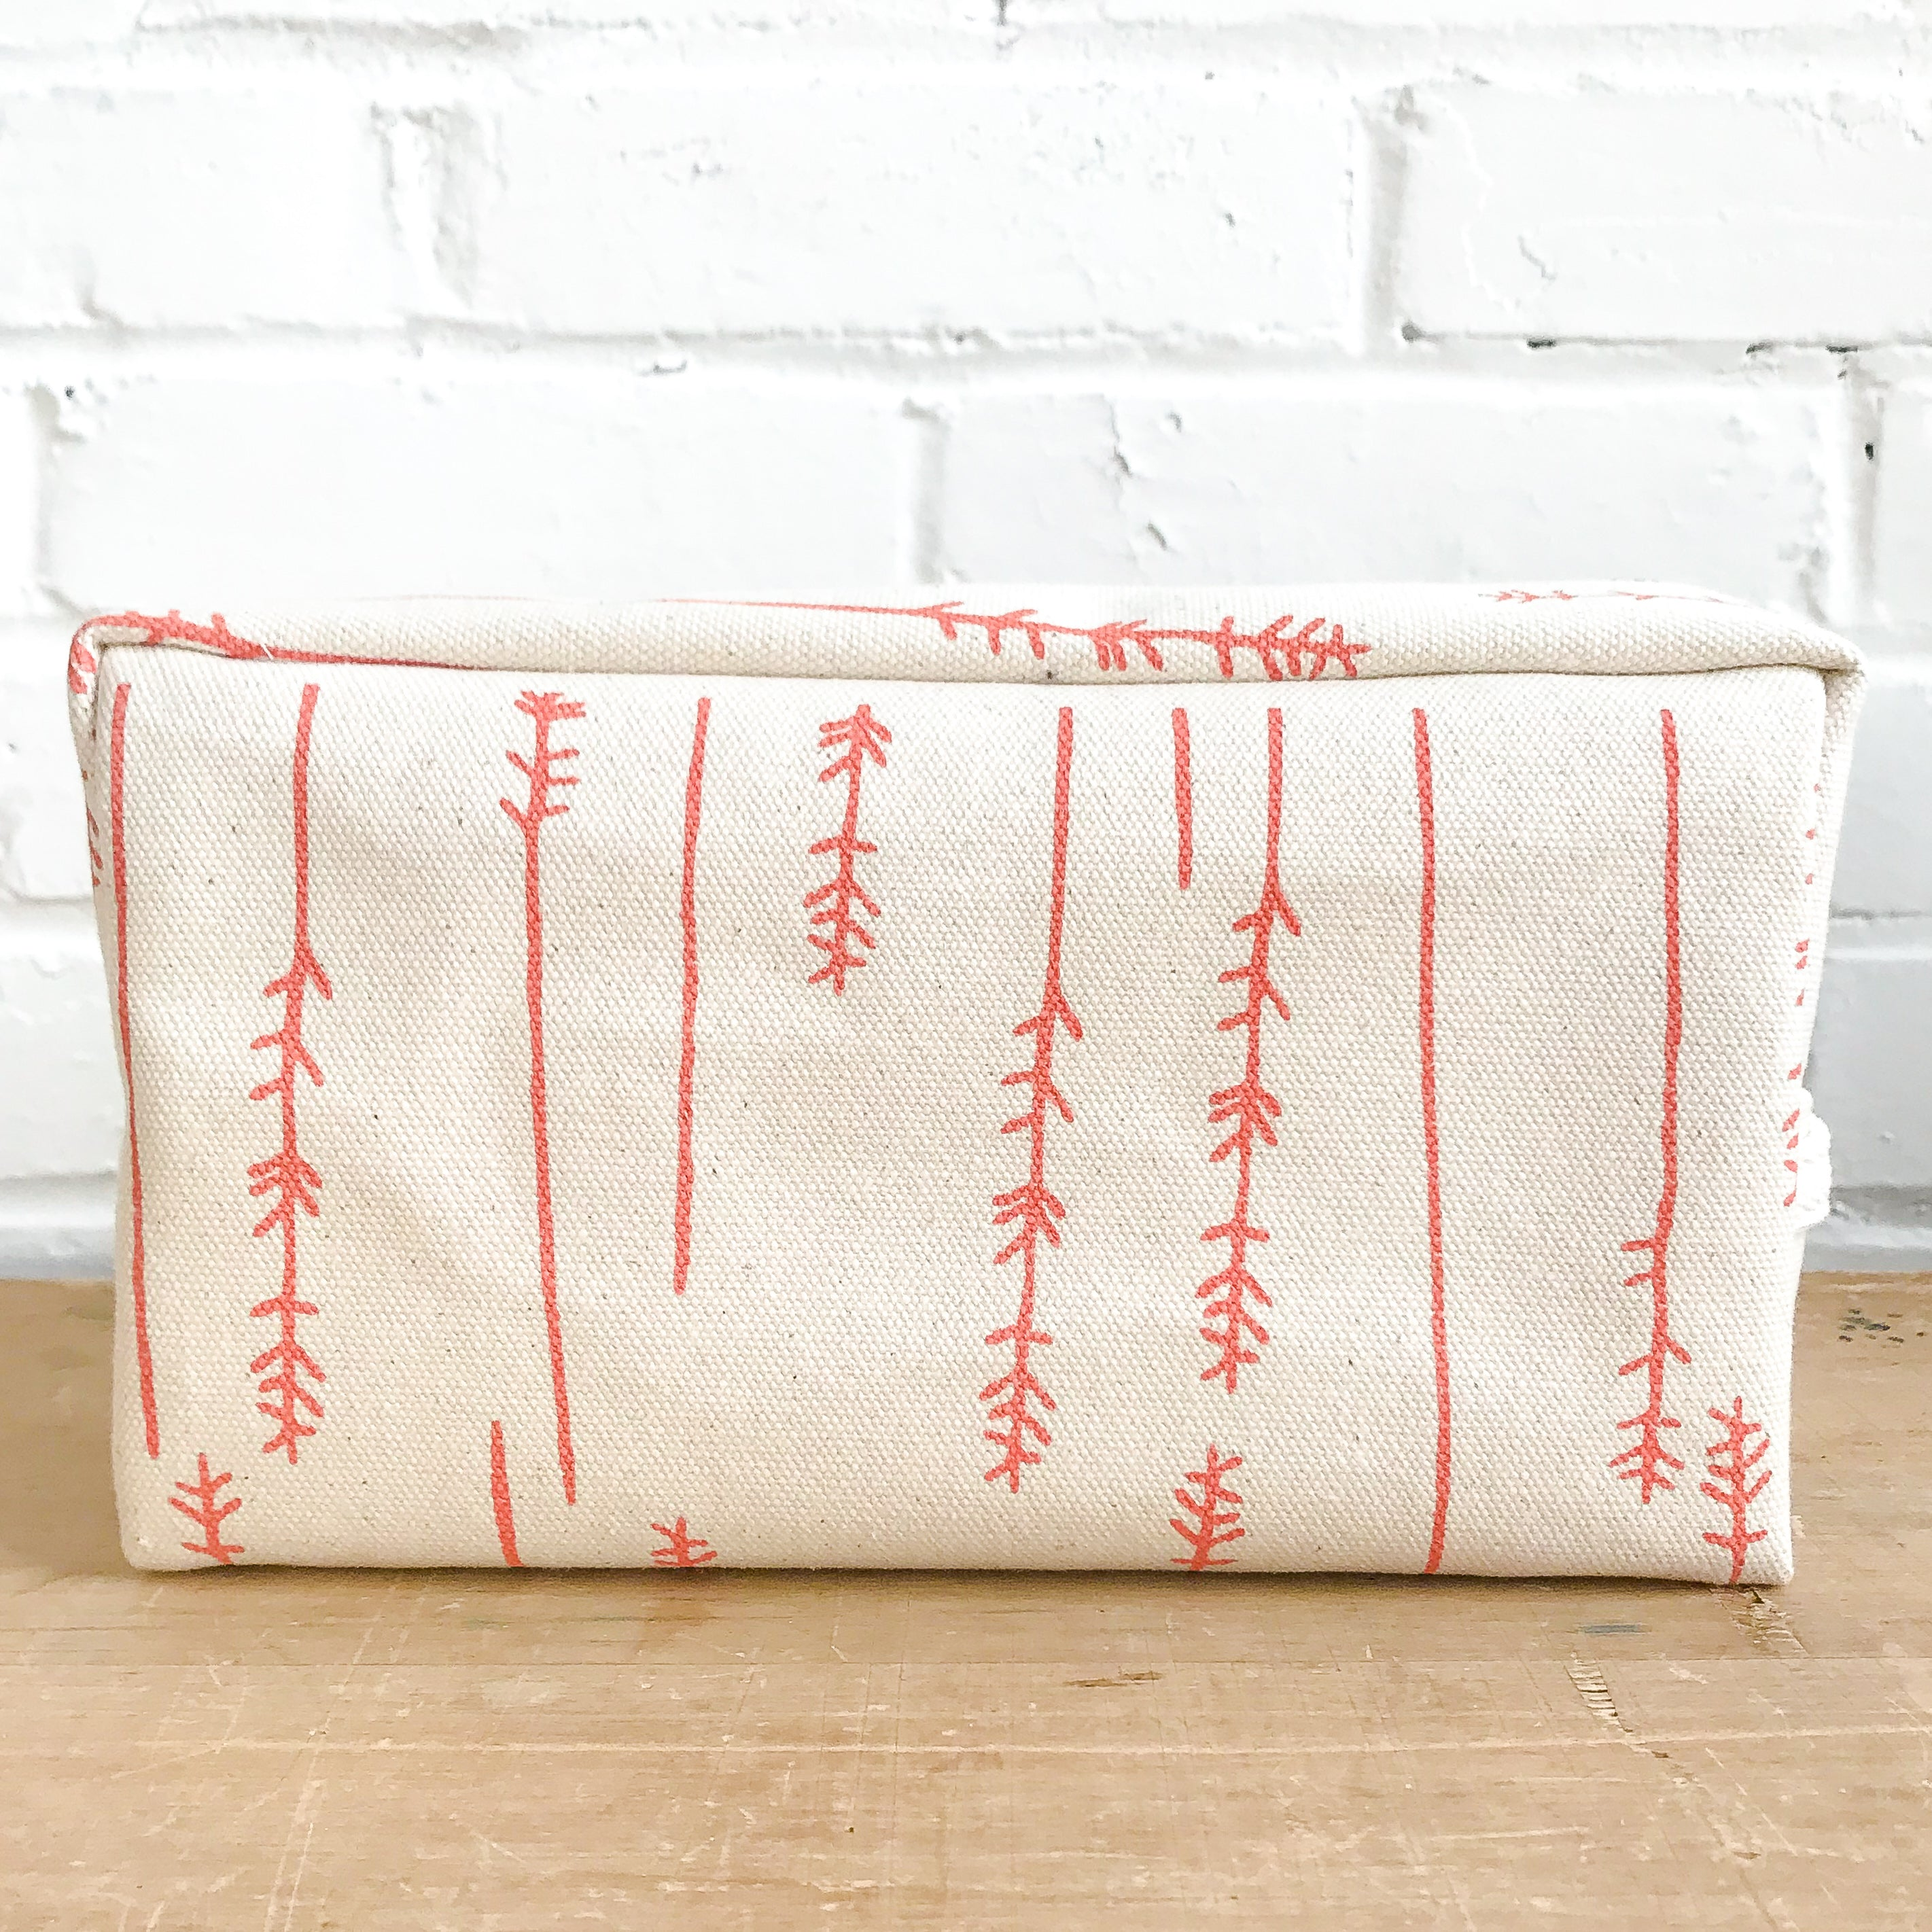 CORAL TWIGS DOPP KIT